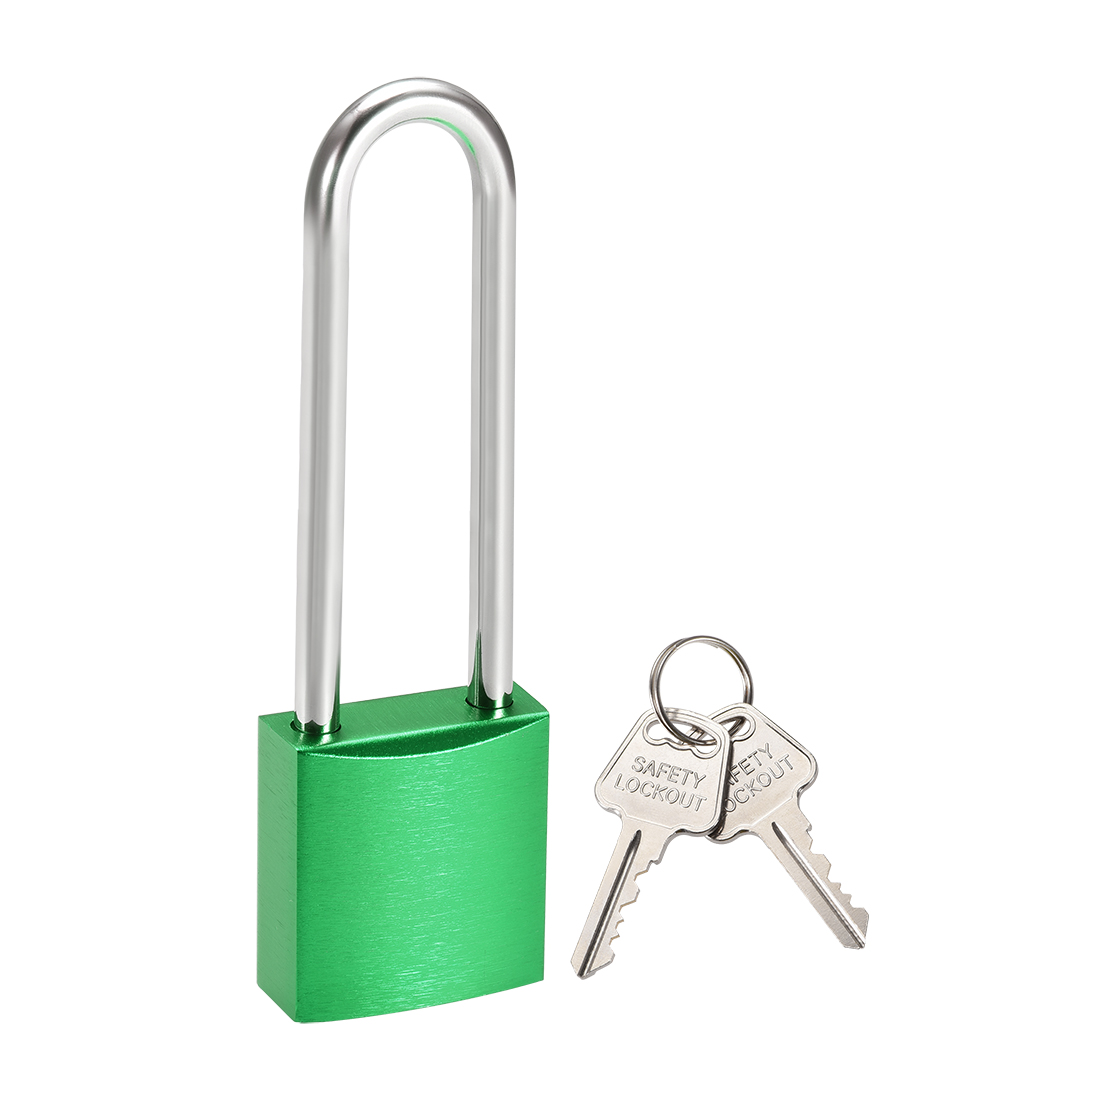 3 Inch Shackle Key Different Safety Padlock Green